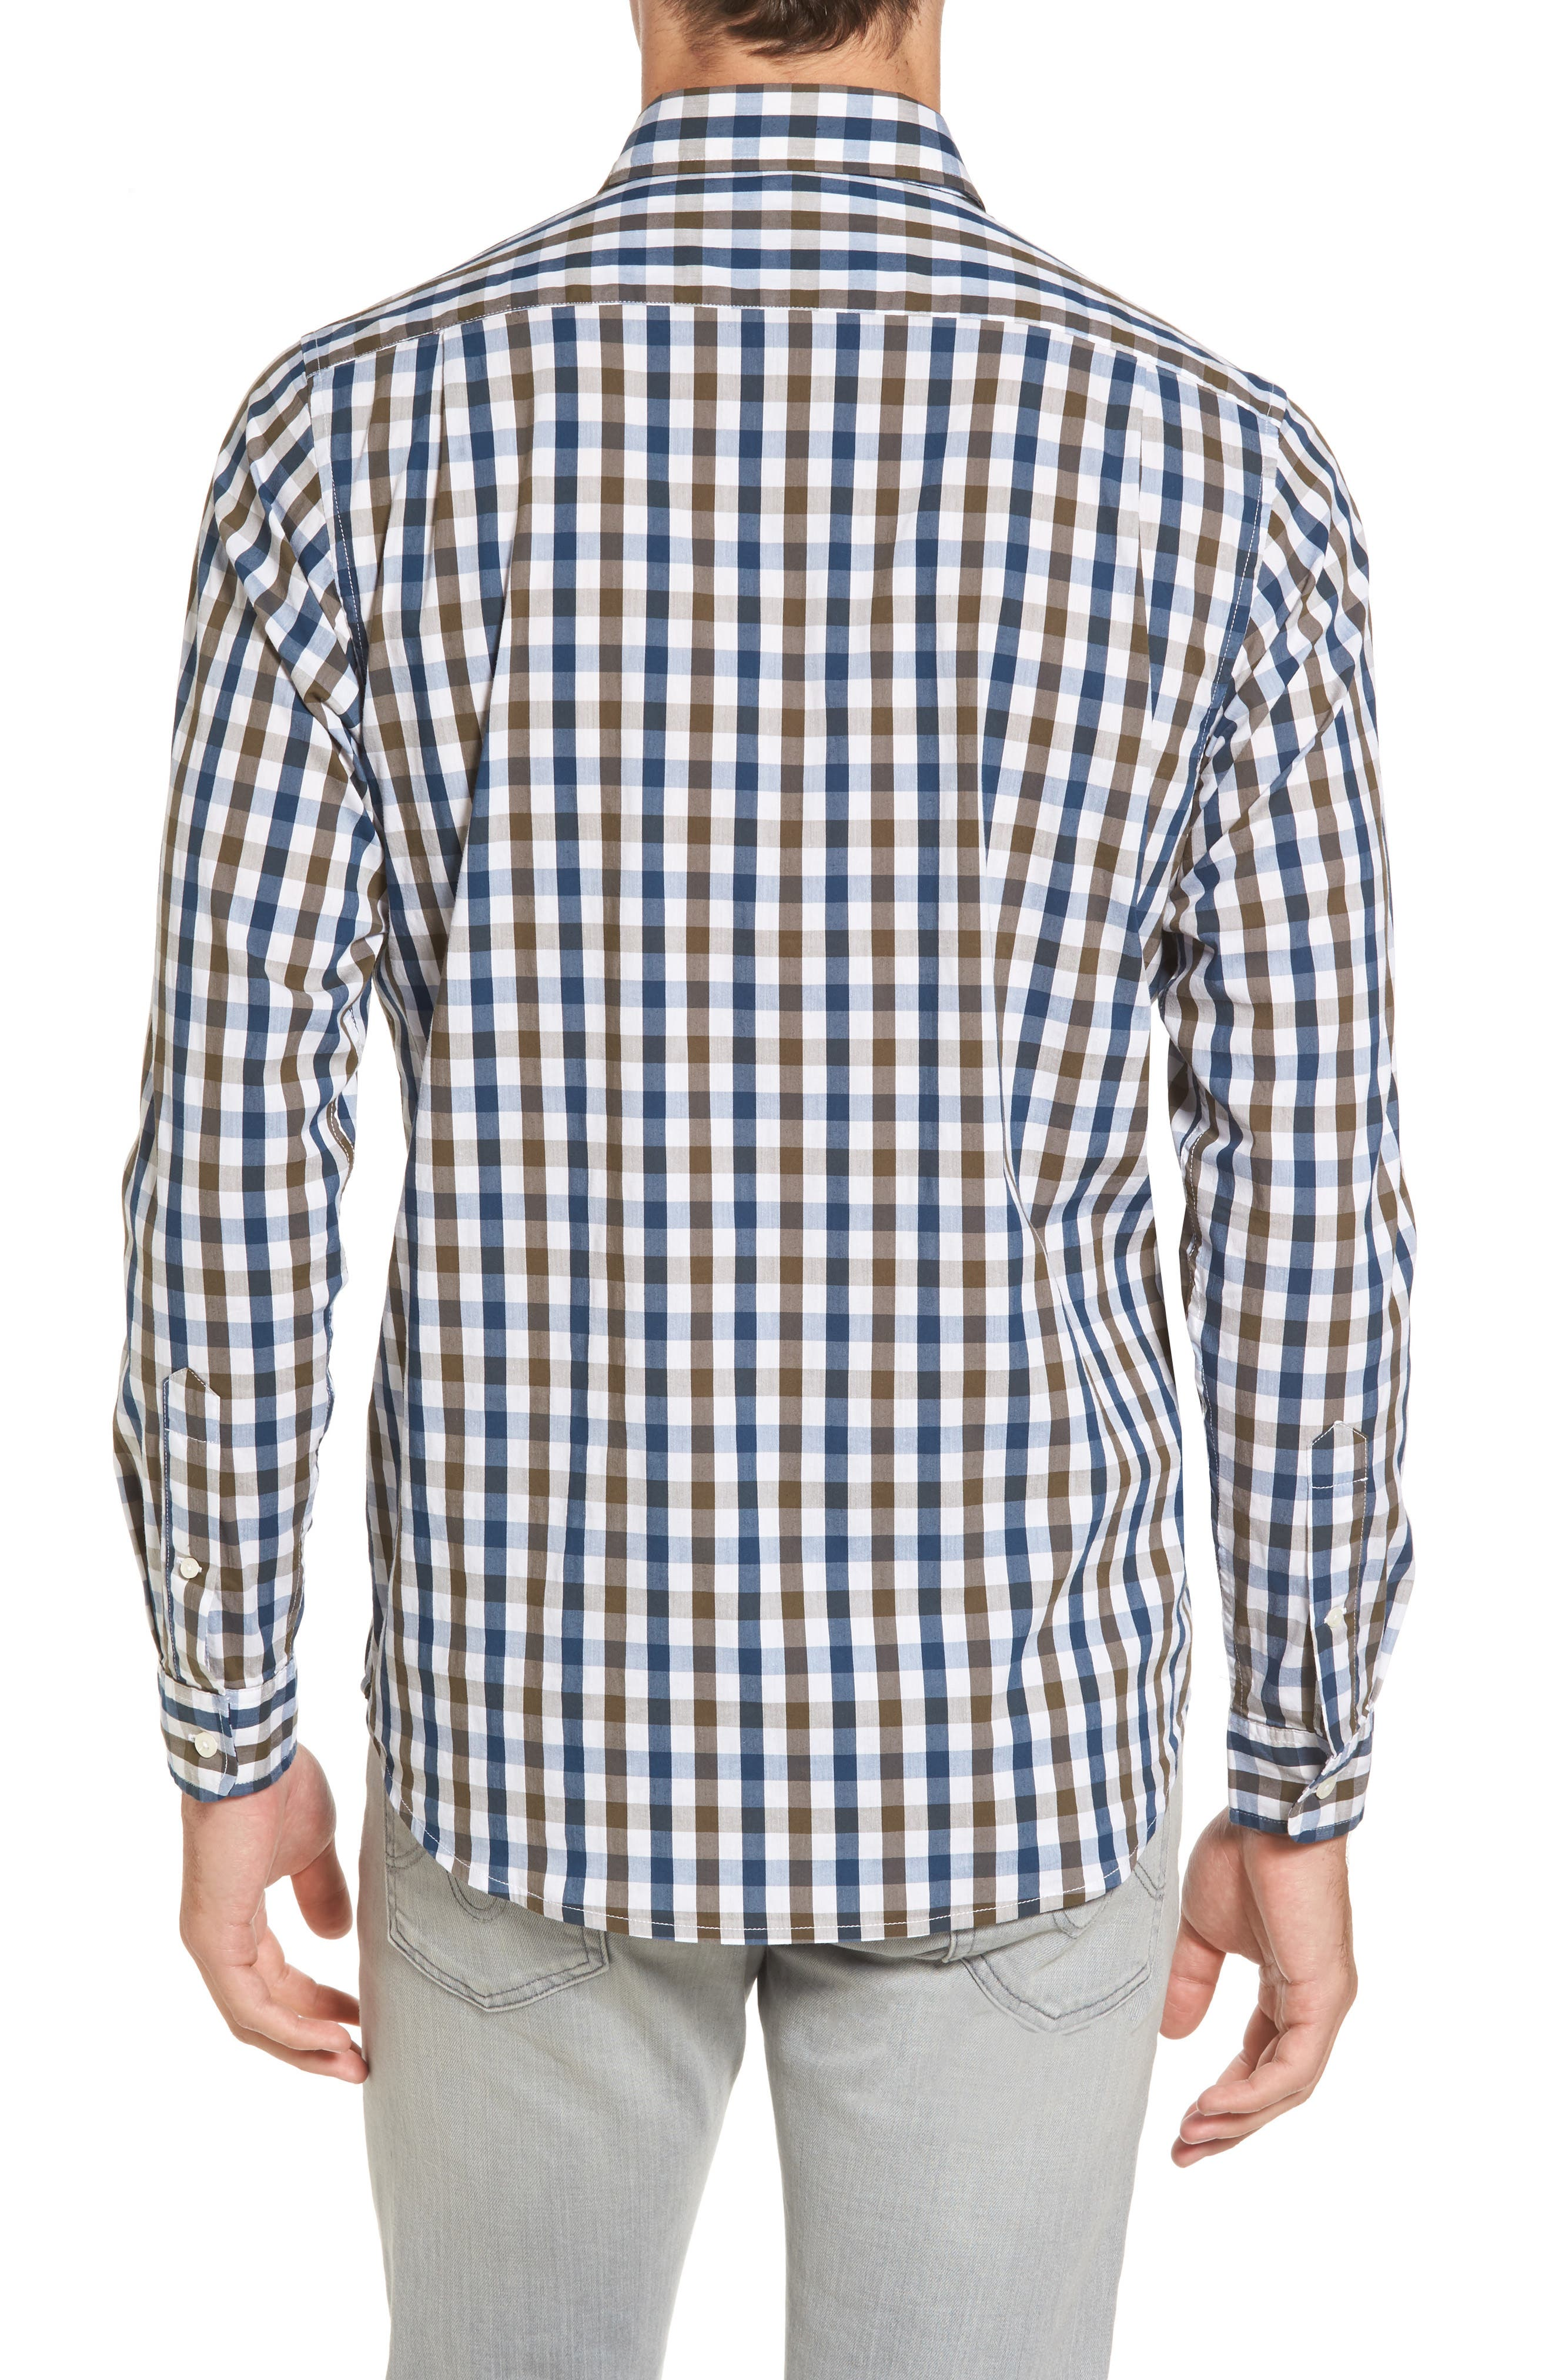 Regular Fit Performance Sport Shirt,                             Alternate thumbnail 2, color,                             Teal/ Army Tricolor Gingham